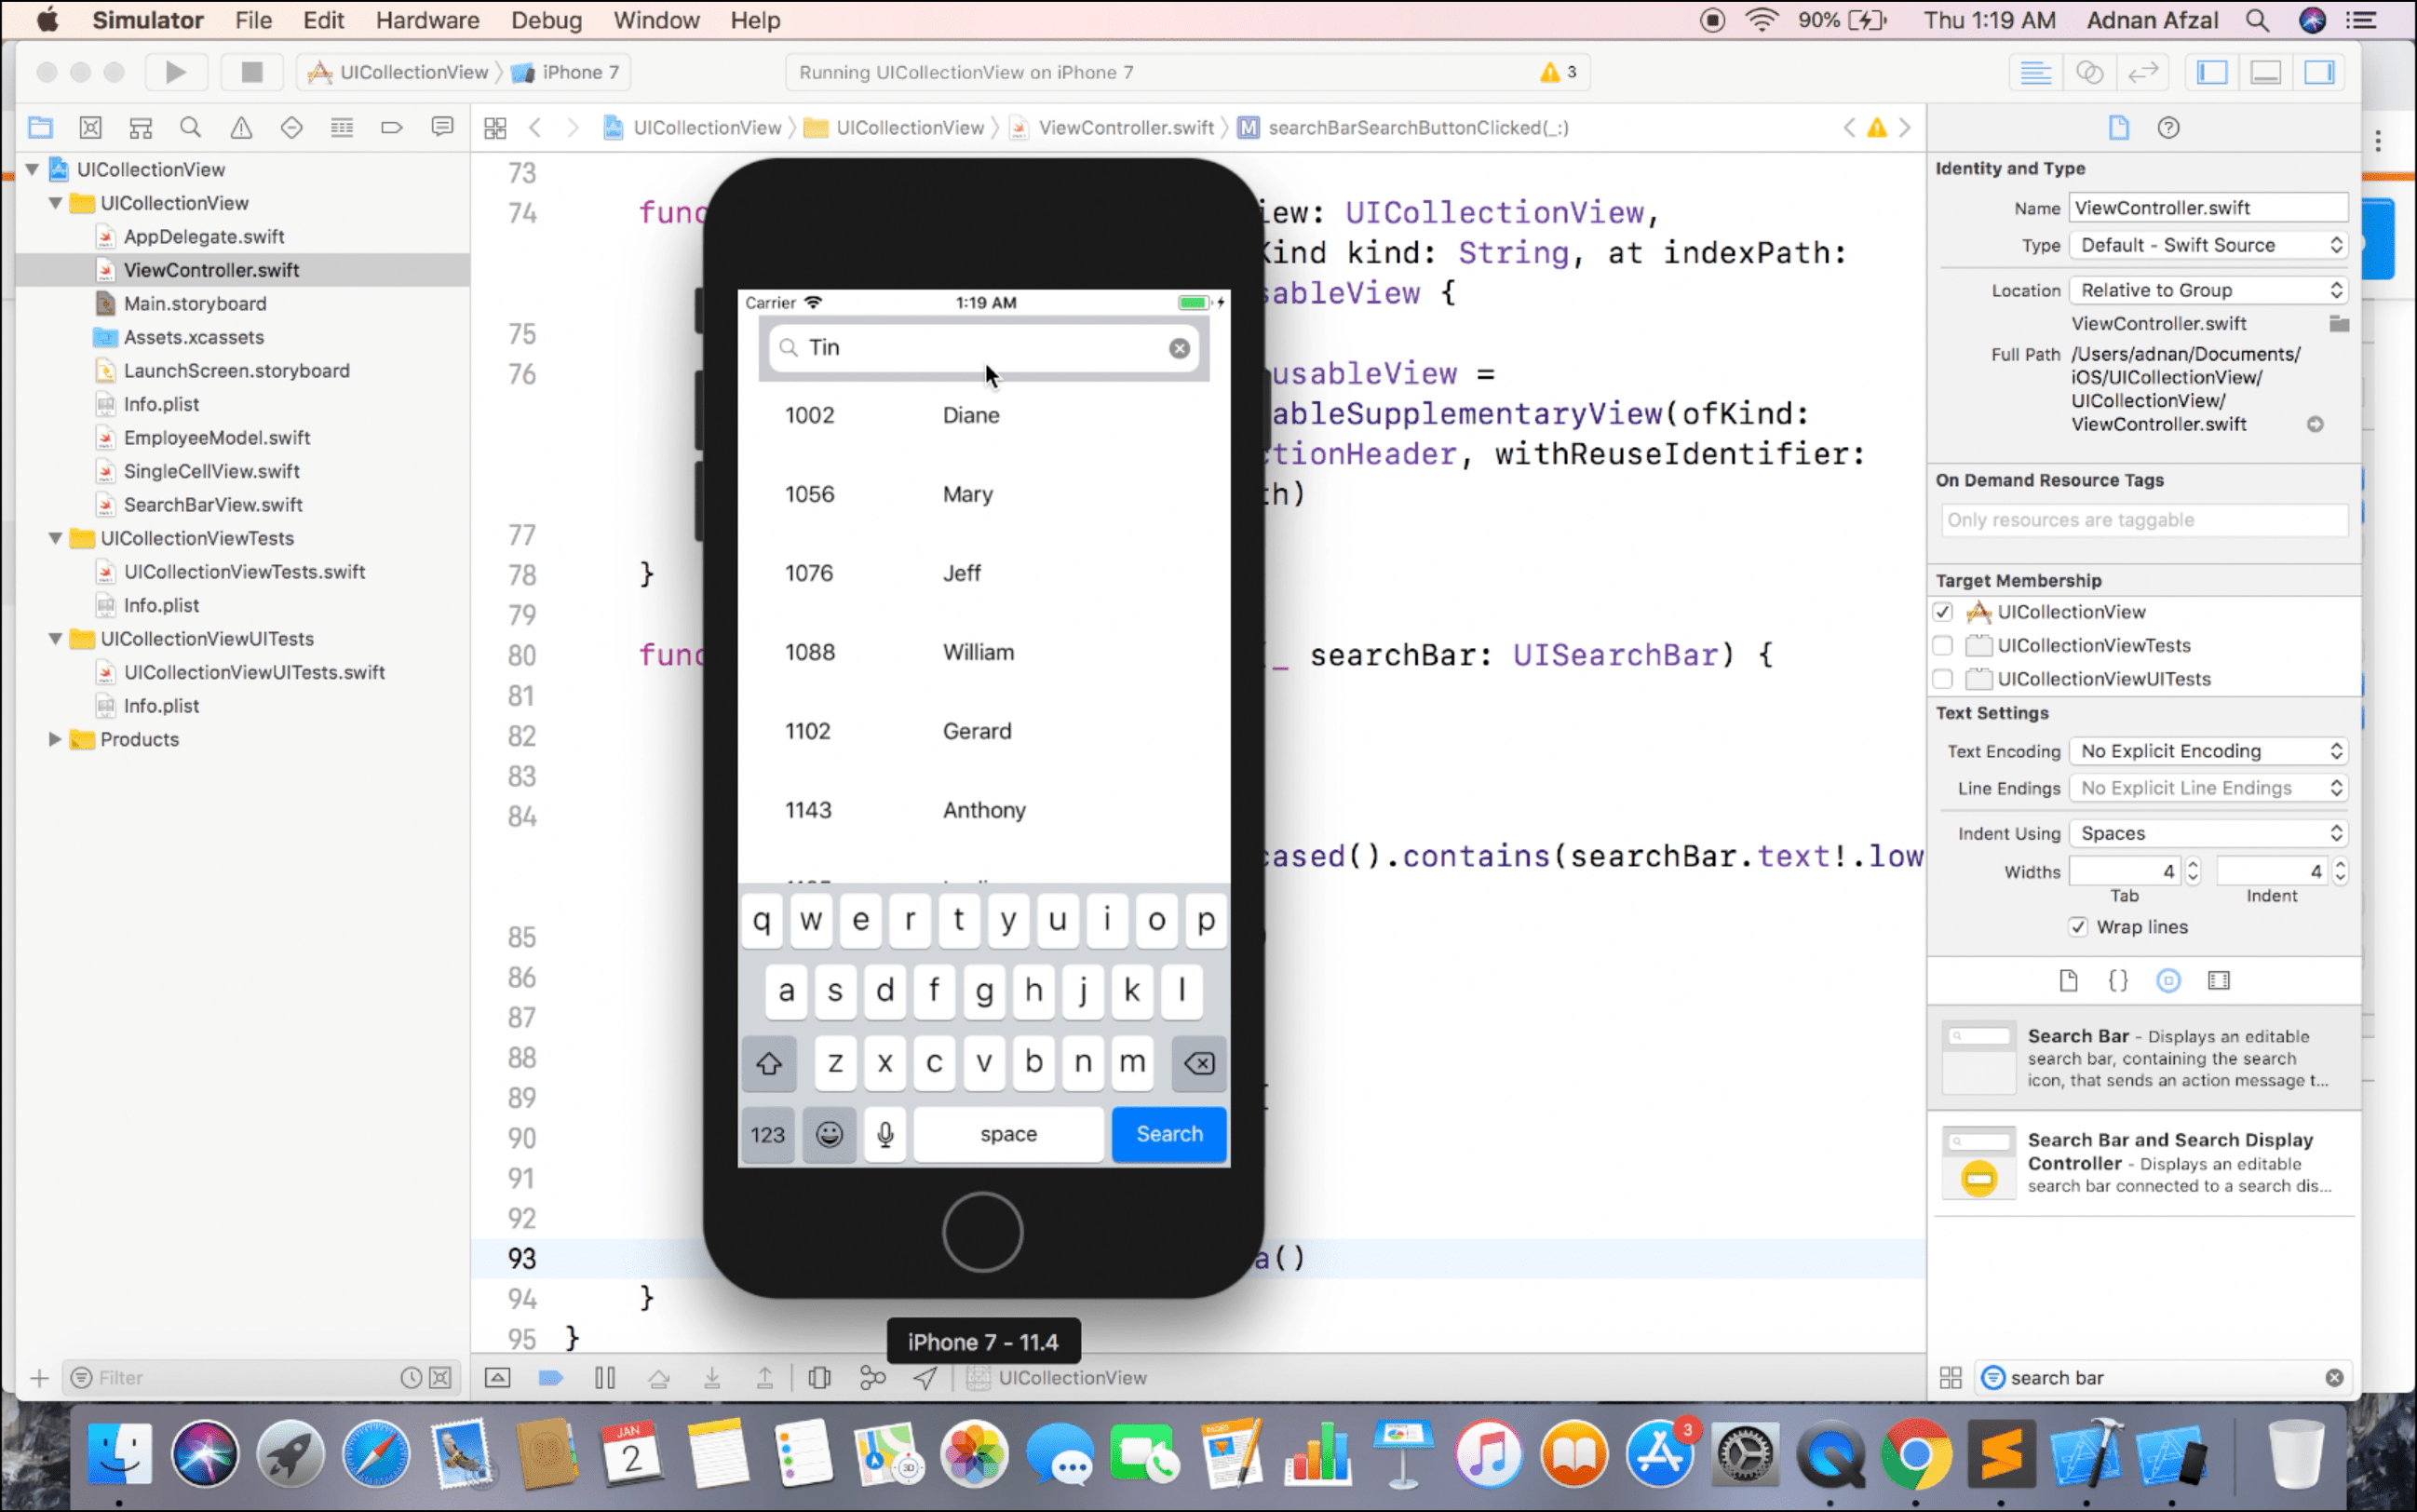 UICollectionview with Search Bar - Swift iOS